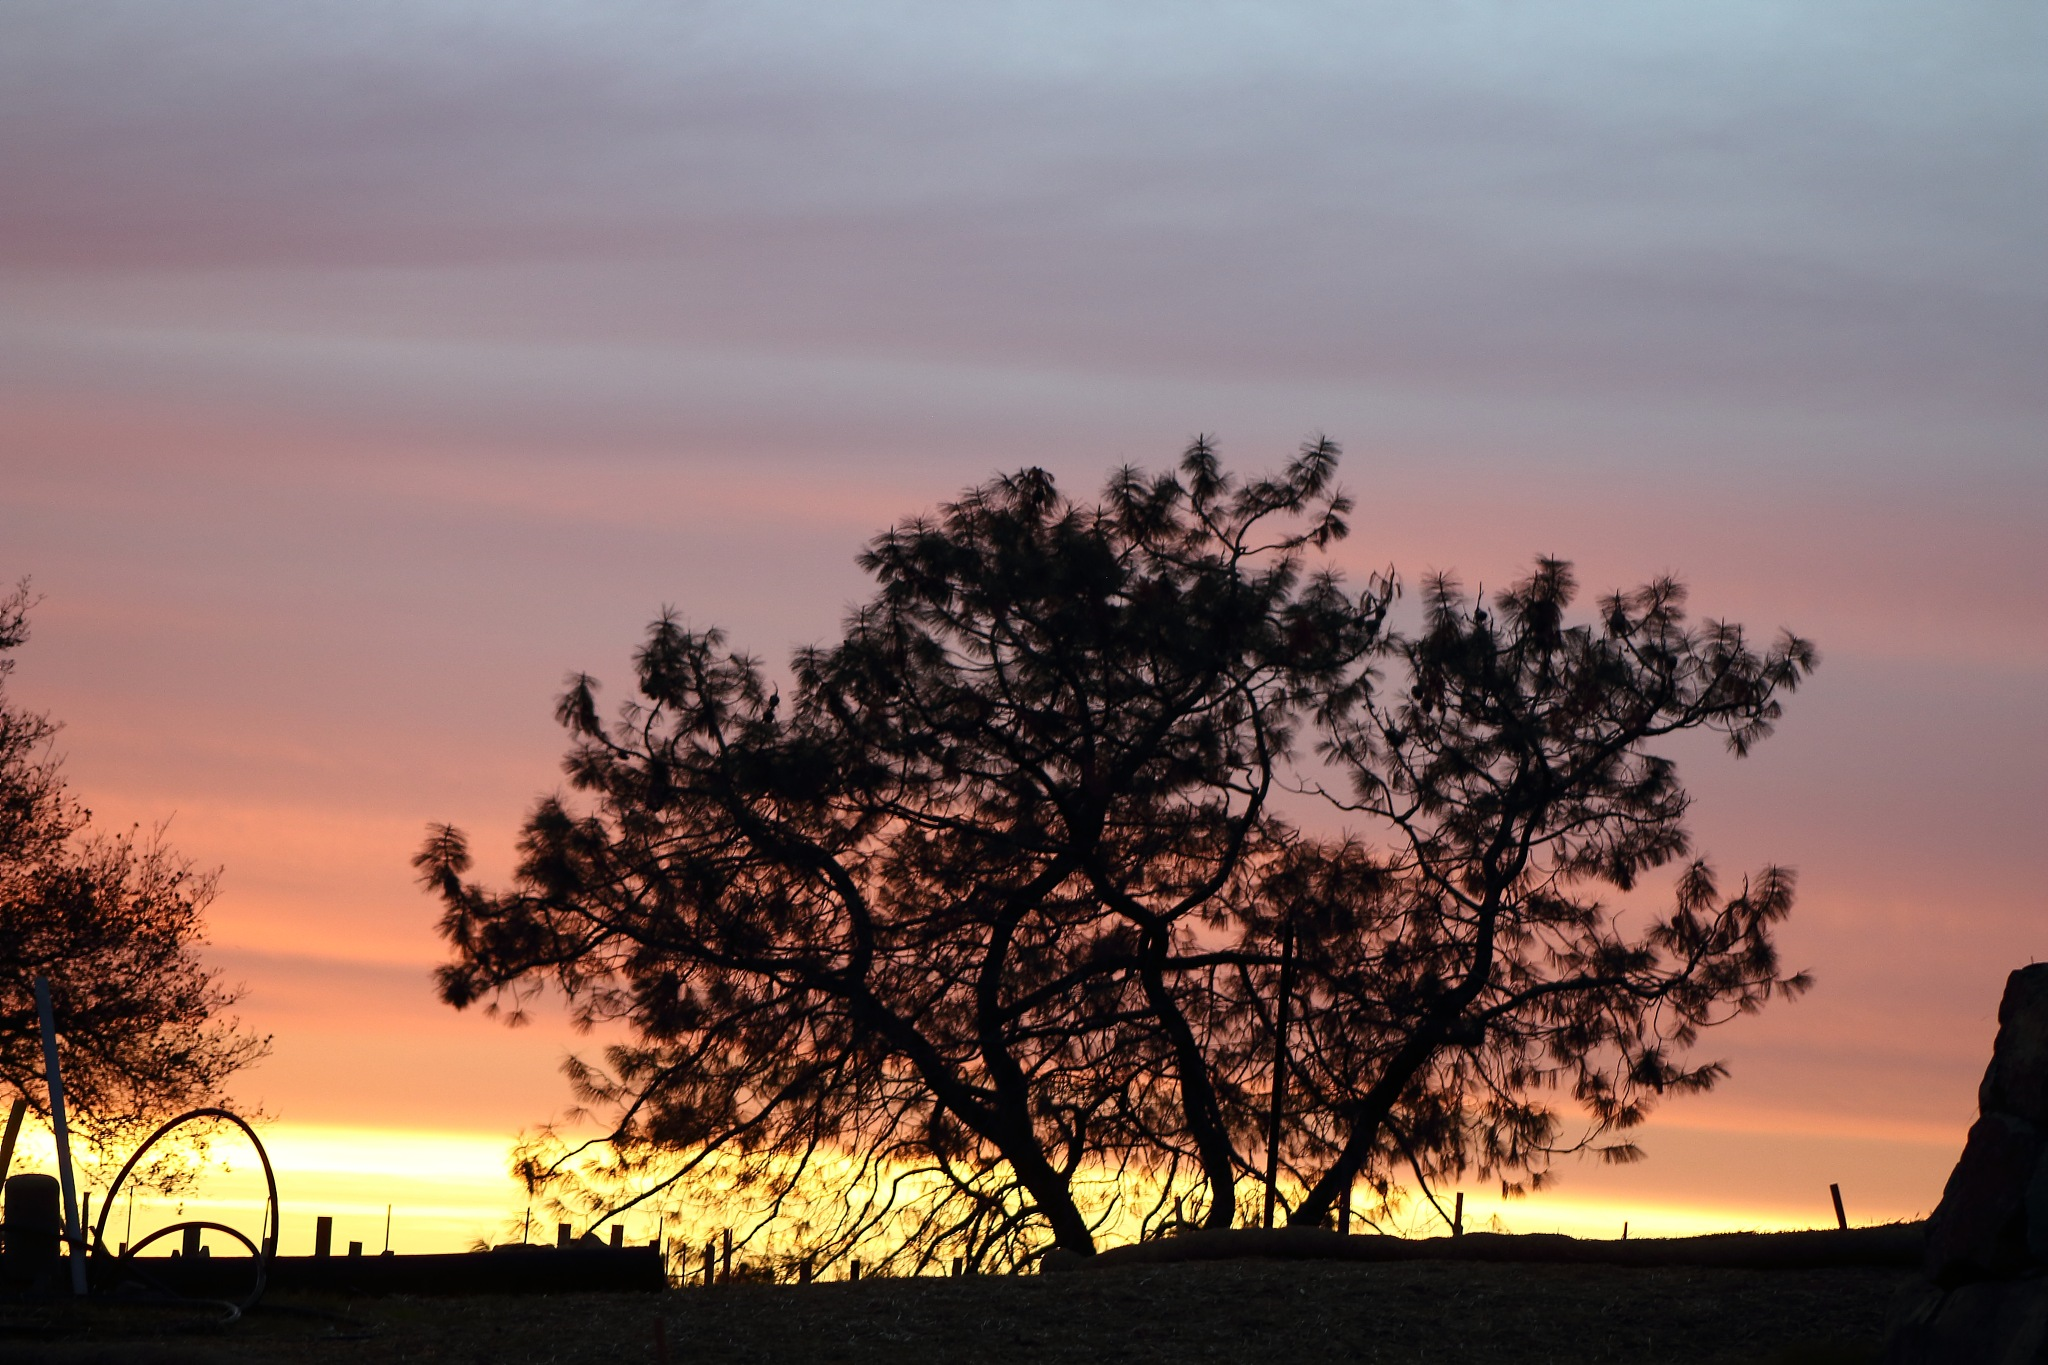 Sunset Trees by Laurie Puglia